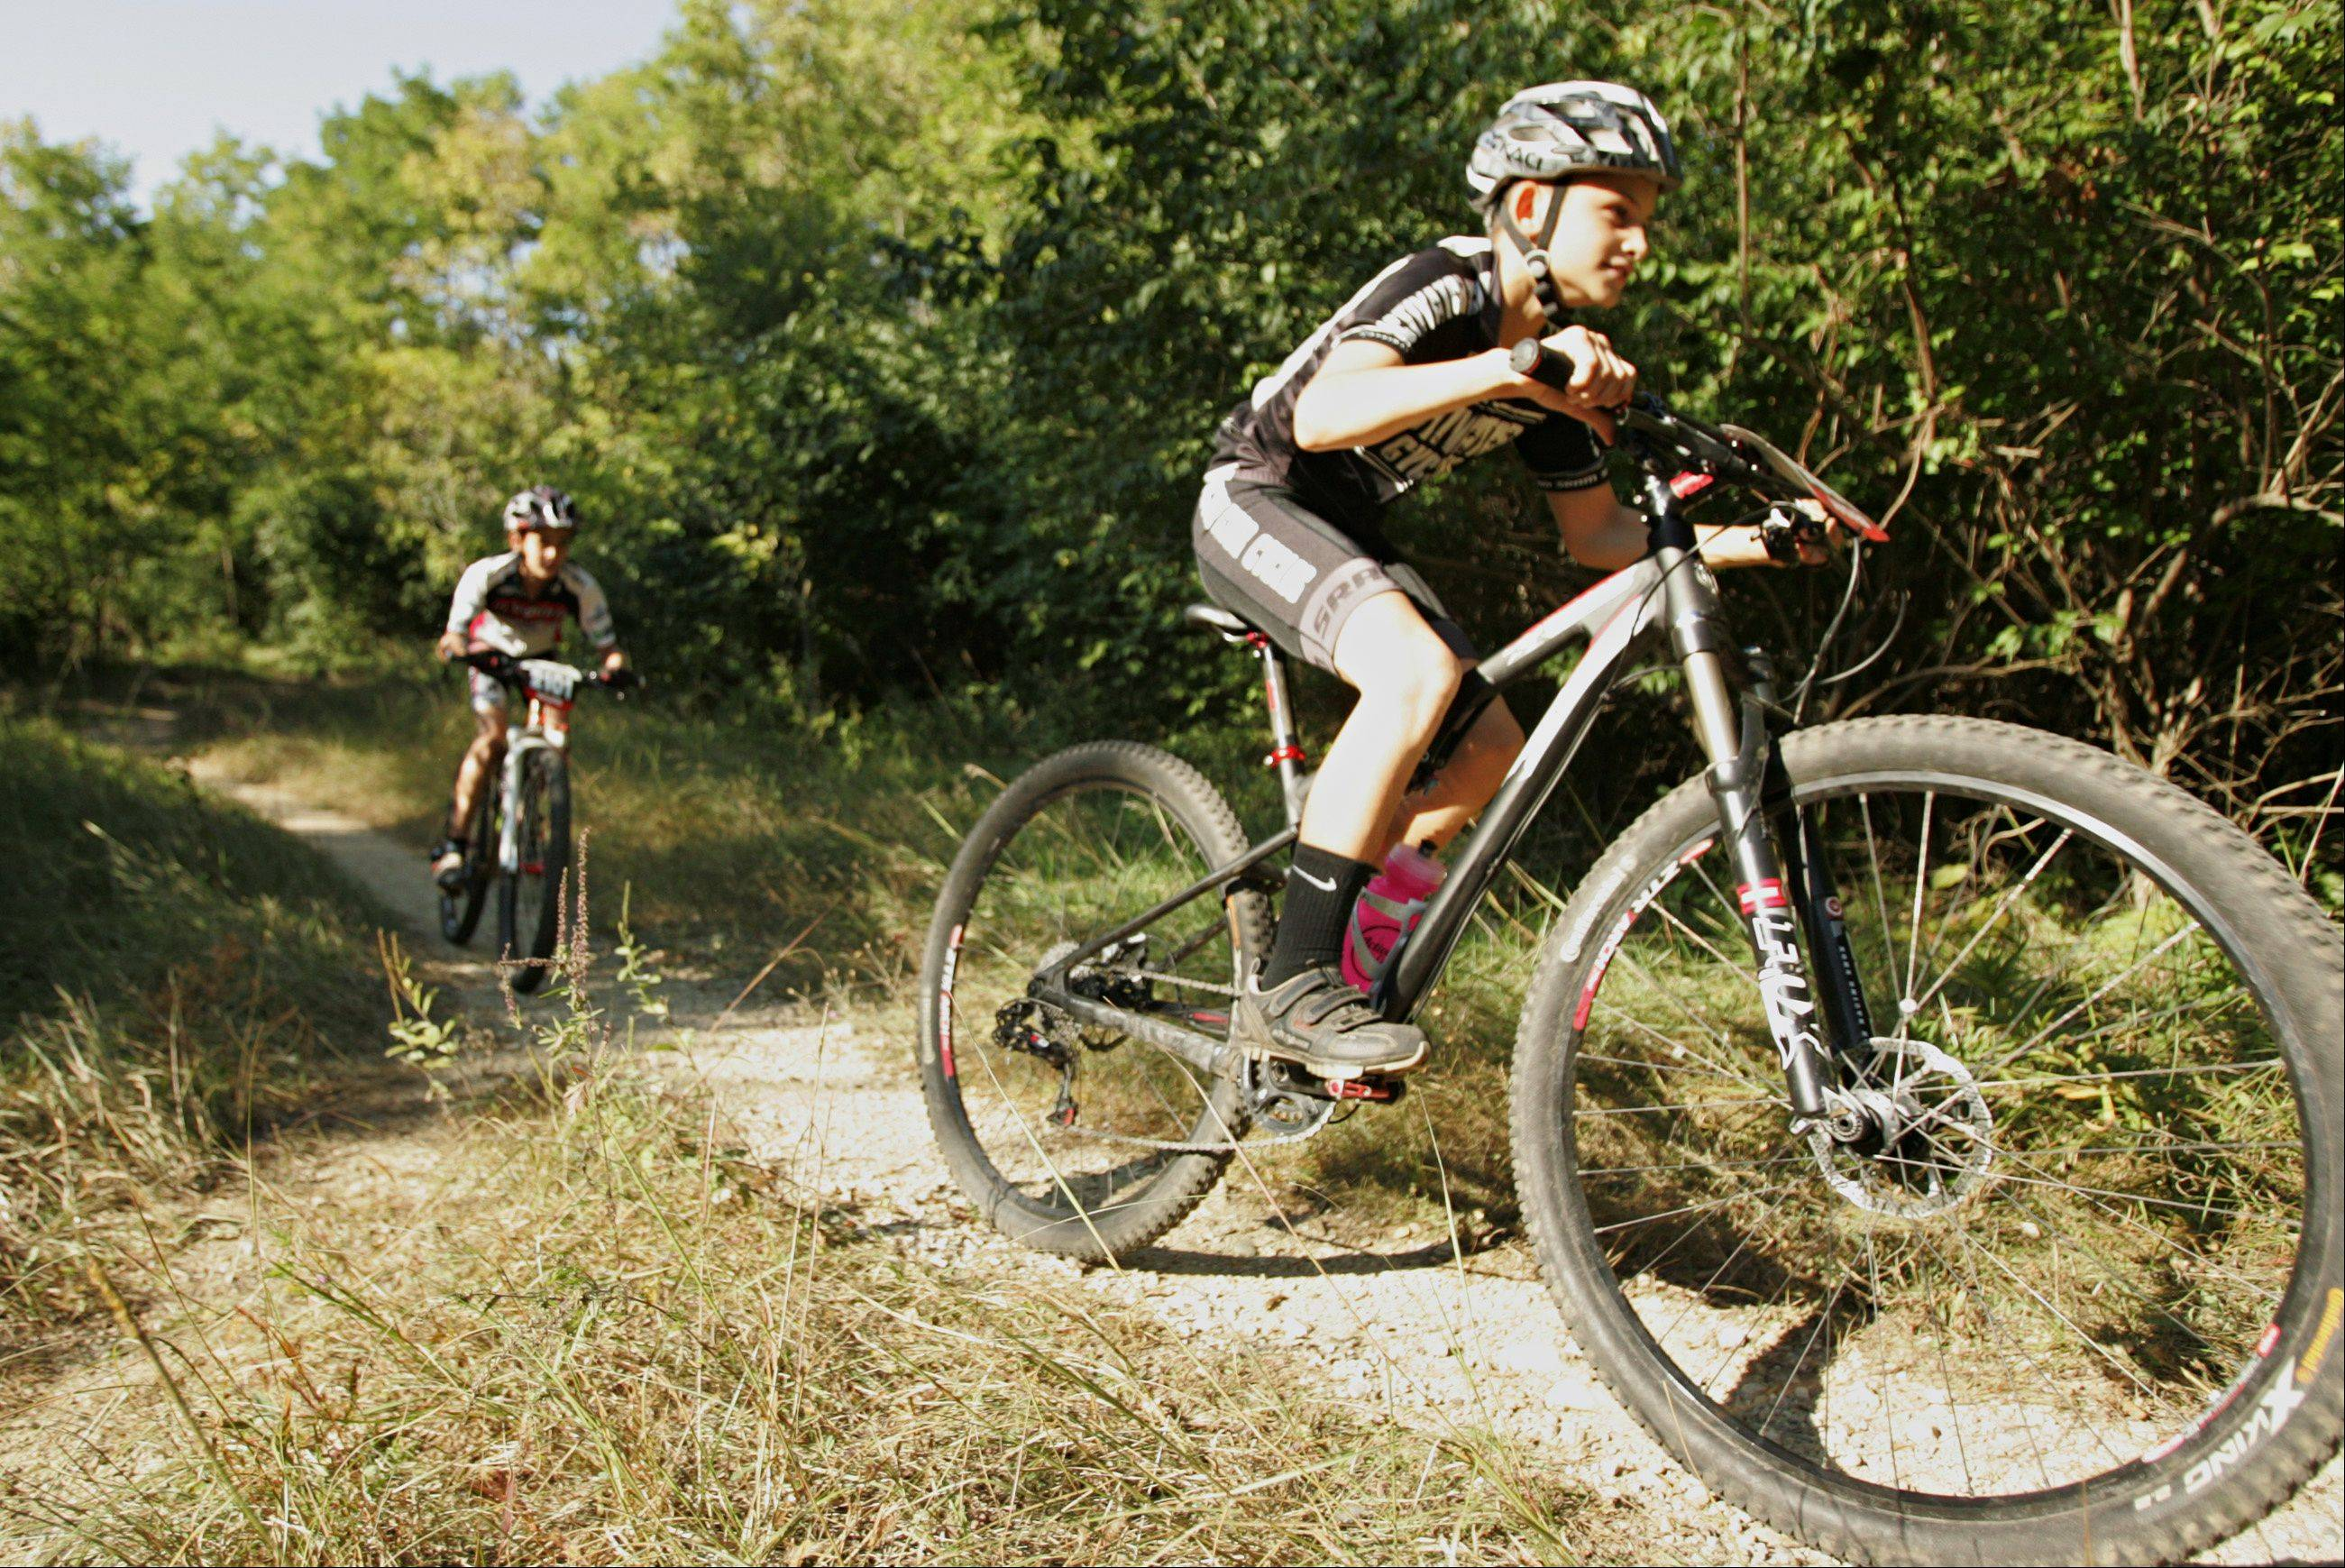 Mountain bike riders Will Darling, 11, of Vernon Hills, front, and Nate Knowles, 12, of Batavia, were introduced to the sport by their fathers. USA Cycling ranks Nate second and Will third in their age group in the cross-country mountain biking category.